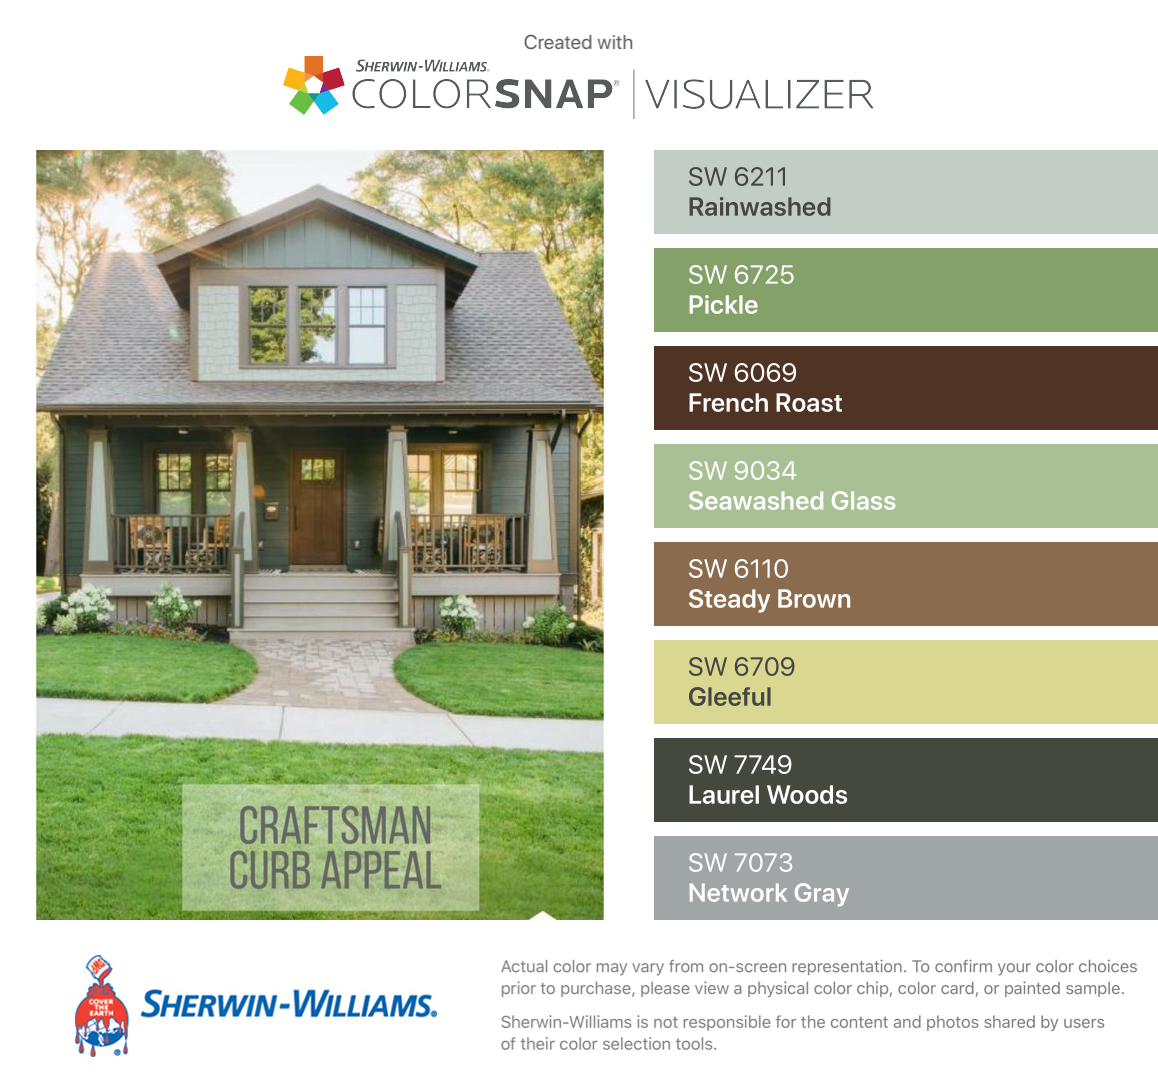 I Found These Colors With Colorsnap Visualizer For Iphone By Sherwin Williams House Exterior Color Schemes Craftsman Bungalow Exterior Exterior House Colors